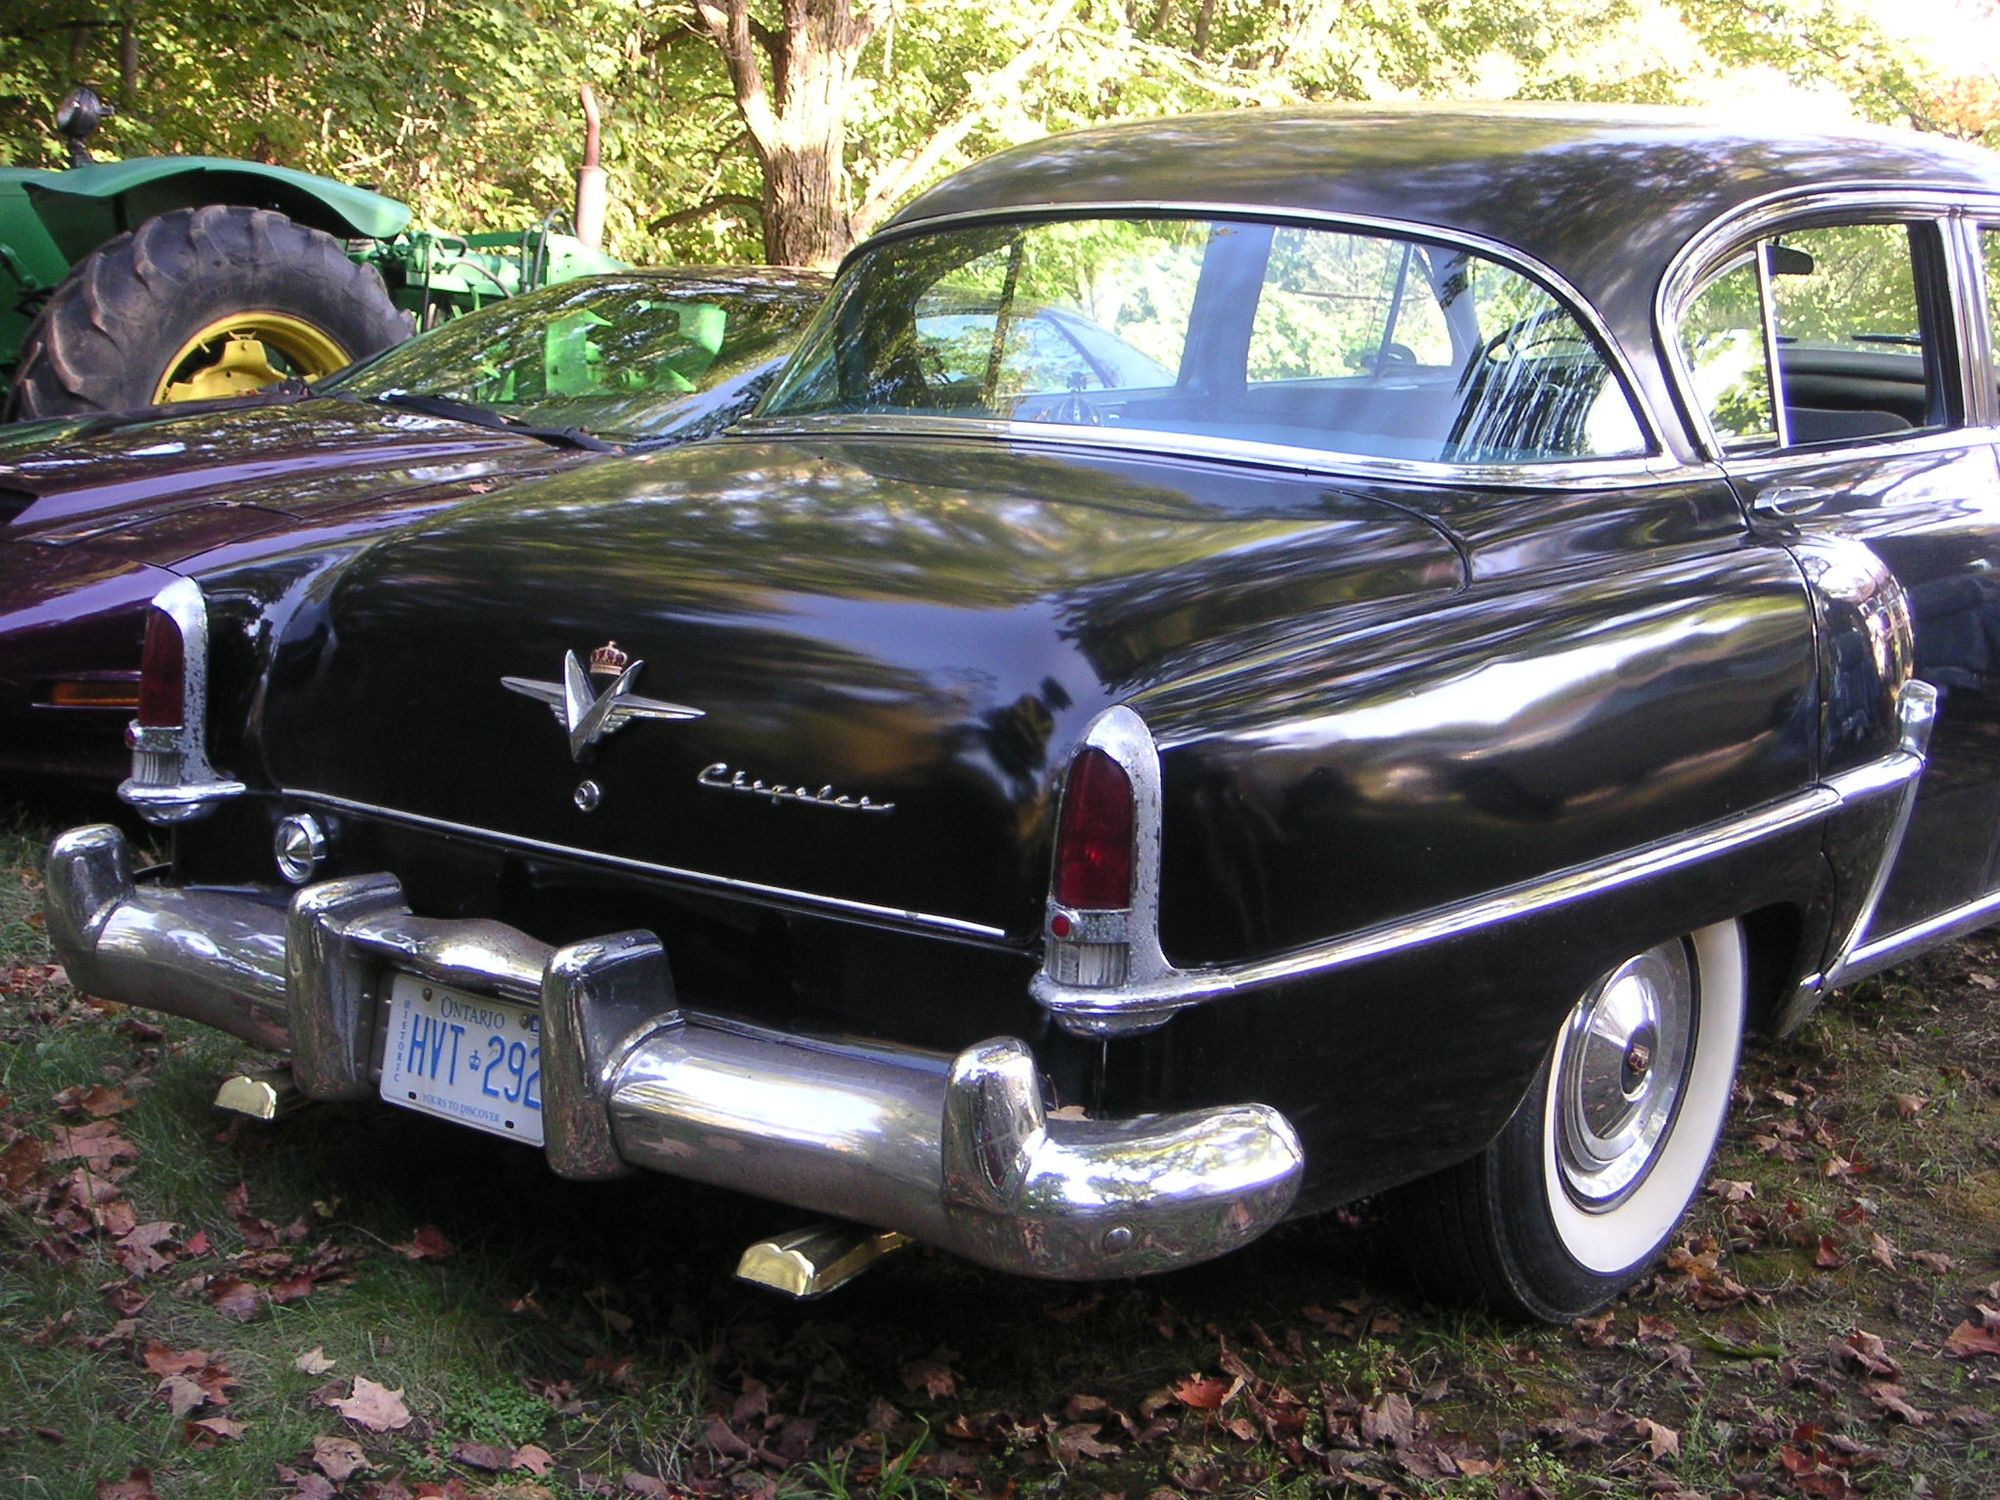 Realview Vehicle in addition 1 together with 1967 Plymouth Belvedere Overview C19525 in addition 1935 Dodge Brothers Touring Sedan Right Side in addition Chrysler Imperial. on dodge prowler